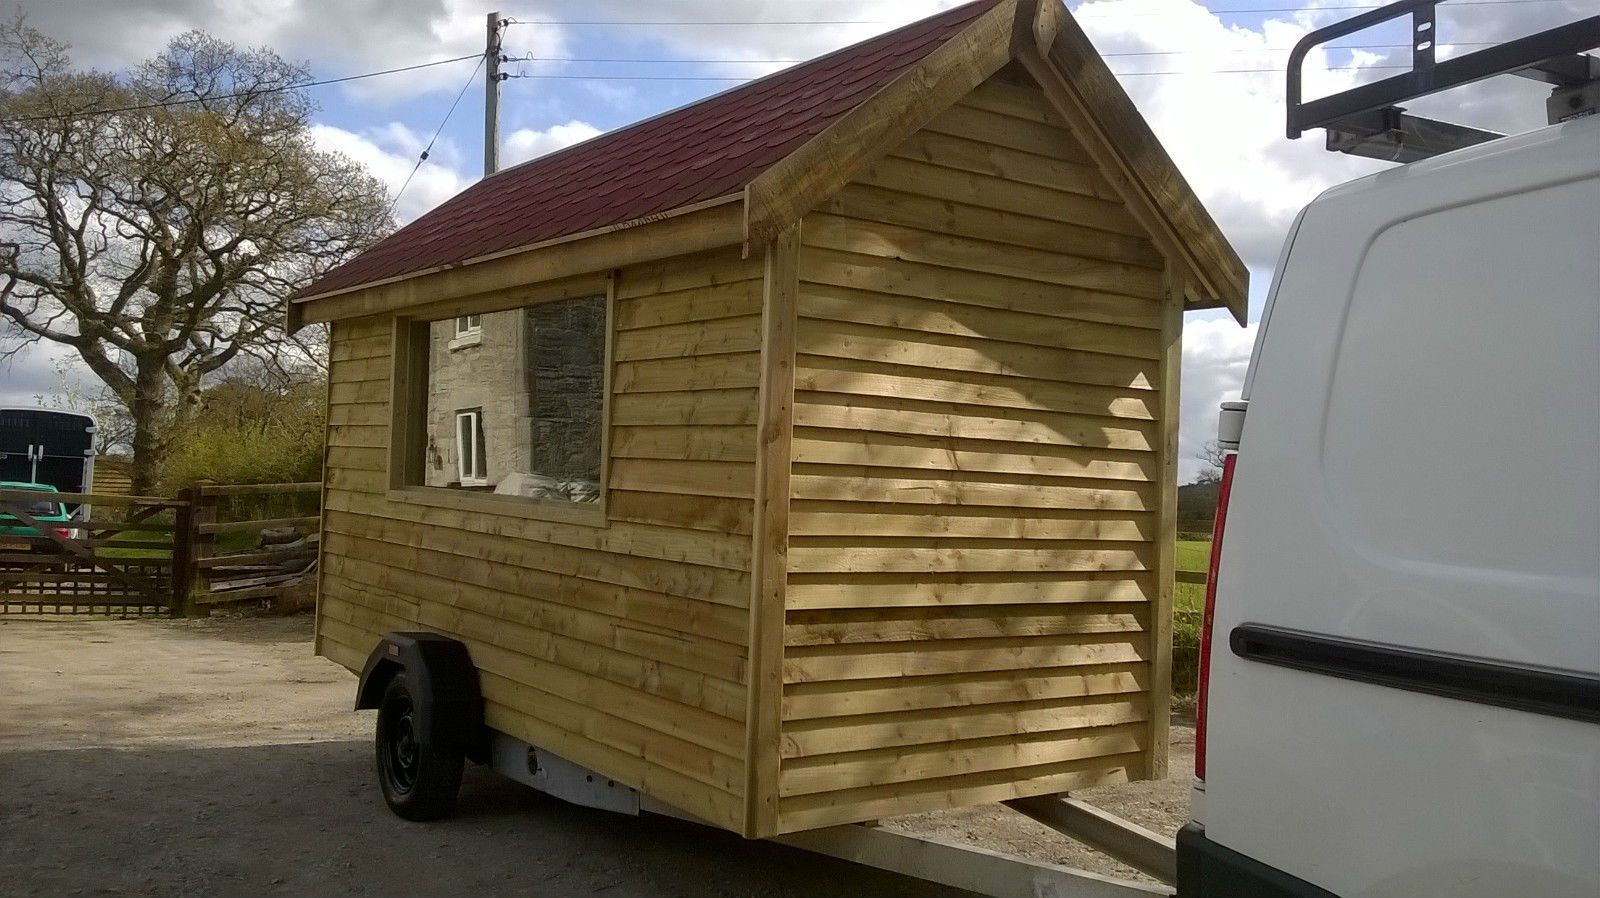 a6b91c1edd mobile shed catering traier glamping pod trailer shepherds hut  in Garden    Patio